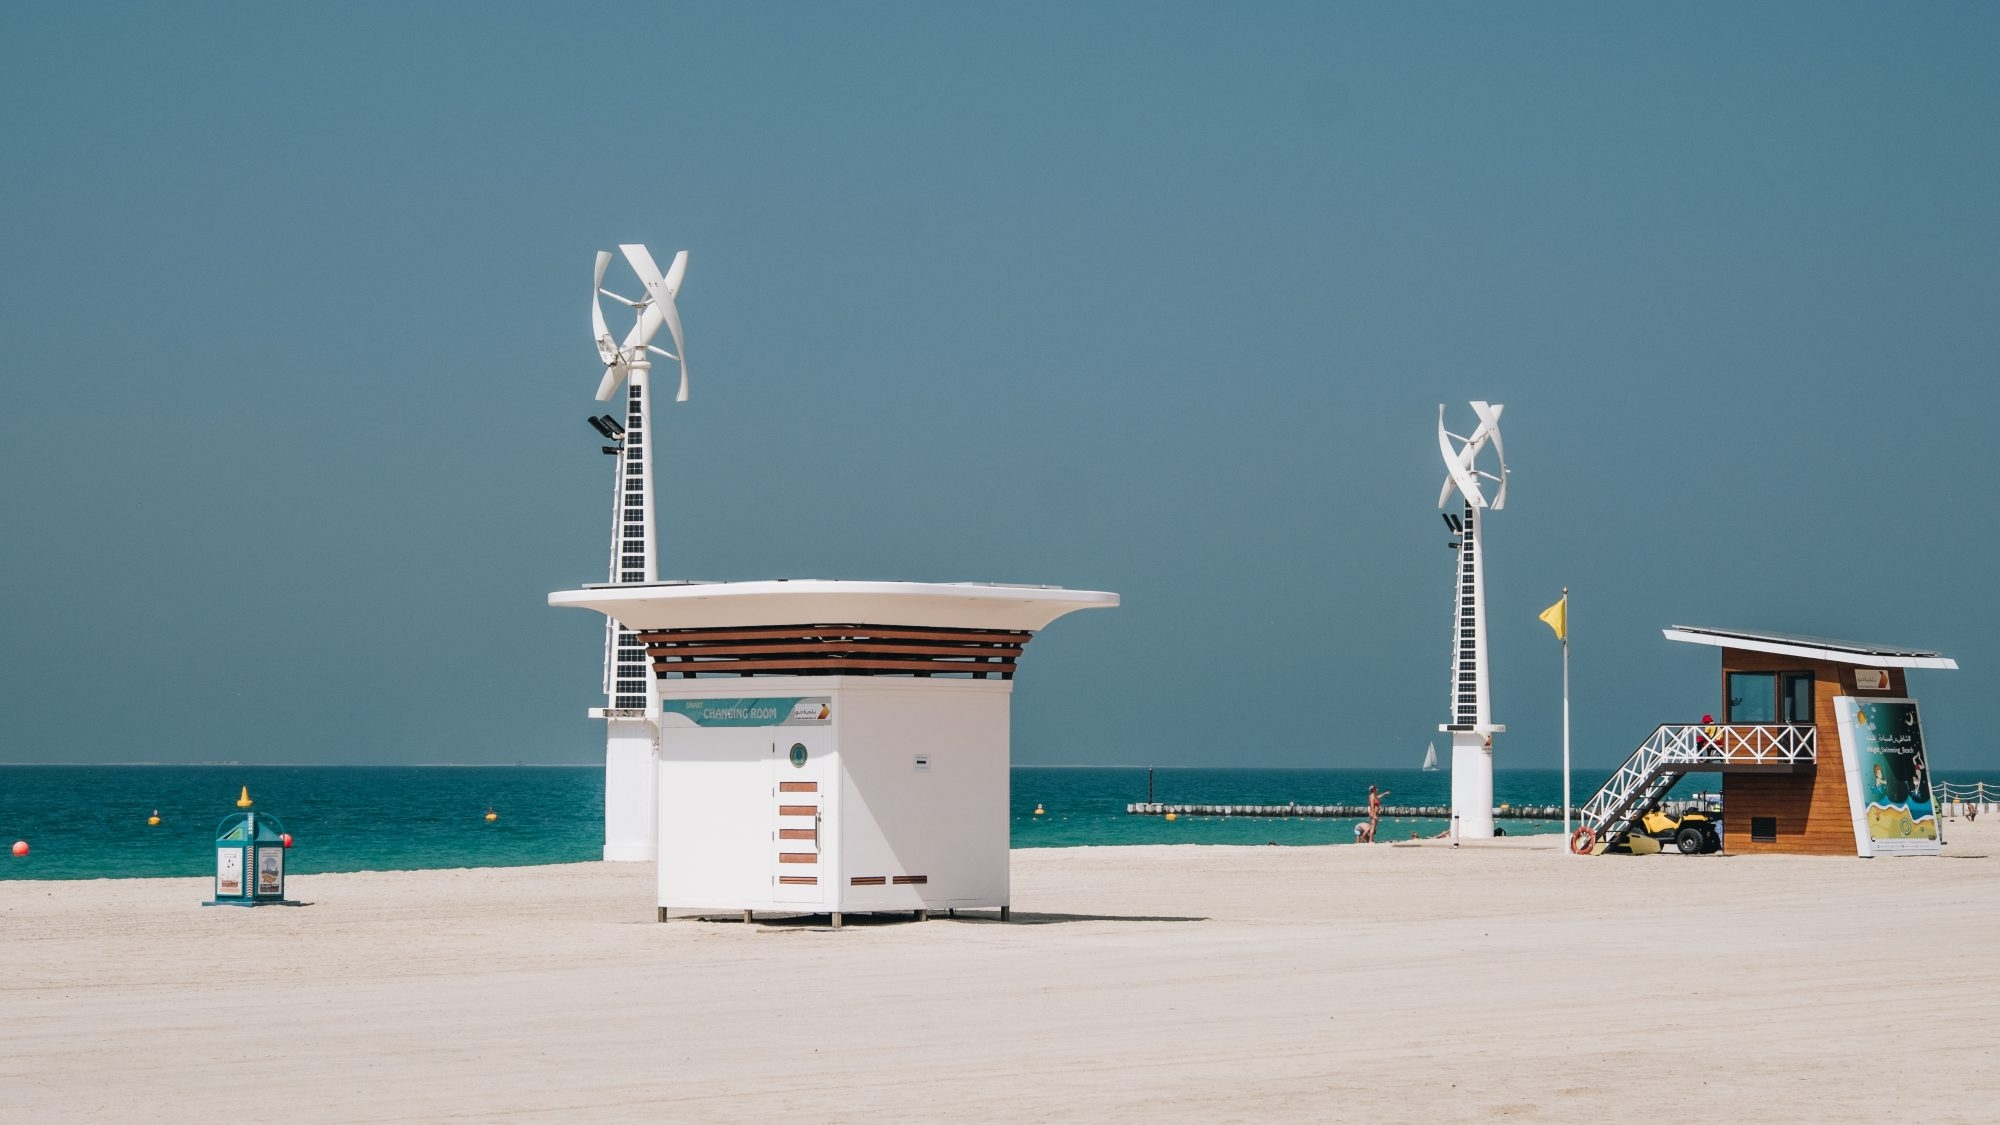 Design sur la plage - Kite Beach Dubaï